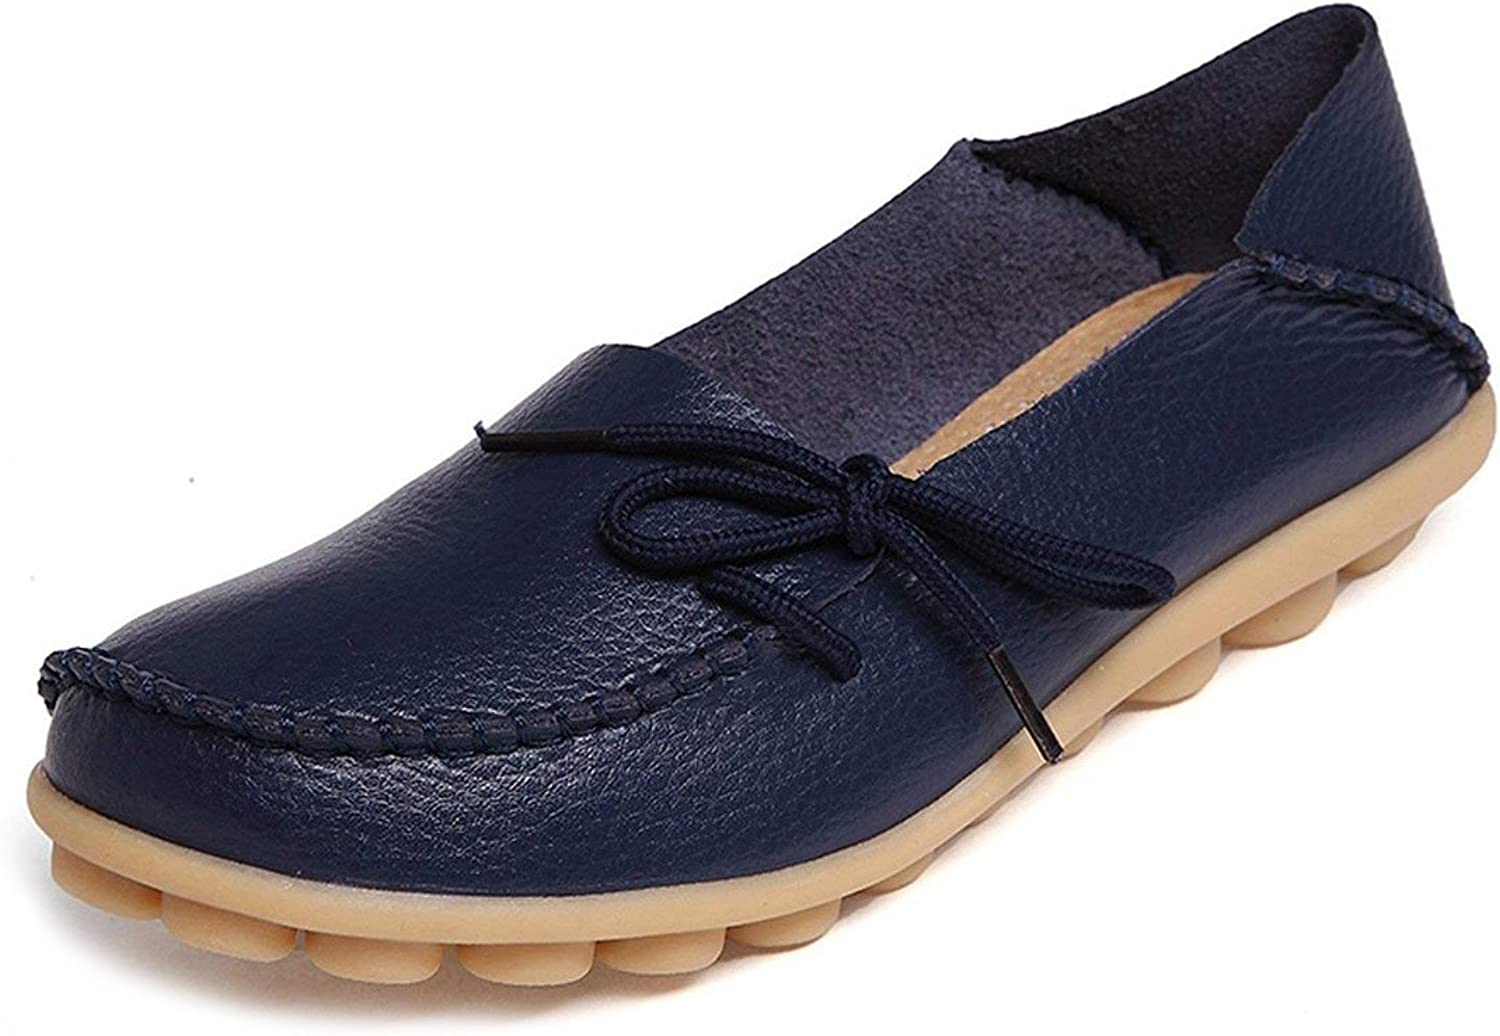 WYSBAOSHU Women's Leather Loafers Flats Slip On Moccasins Casual Driving shoes(10 B (M) US Label Size 43,Dark bluee)